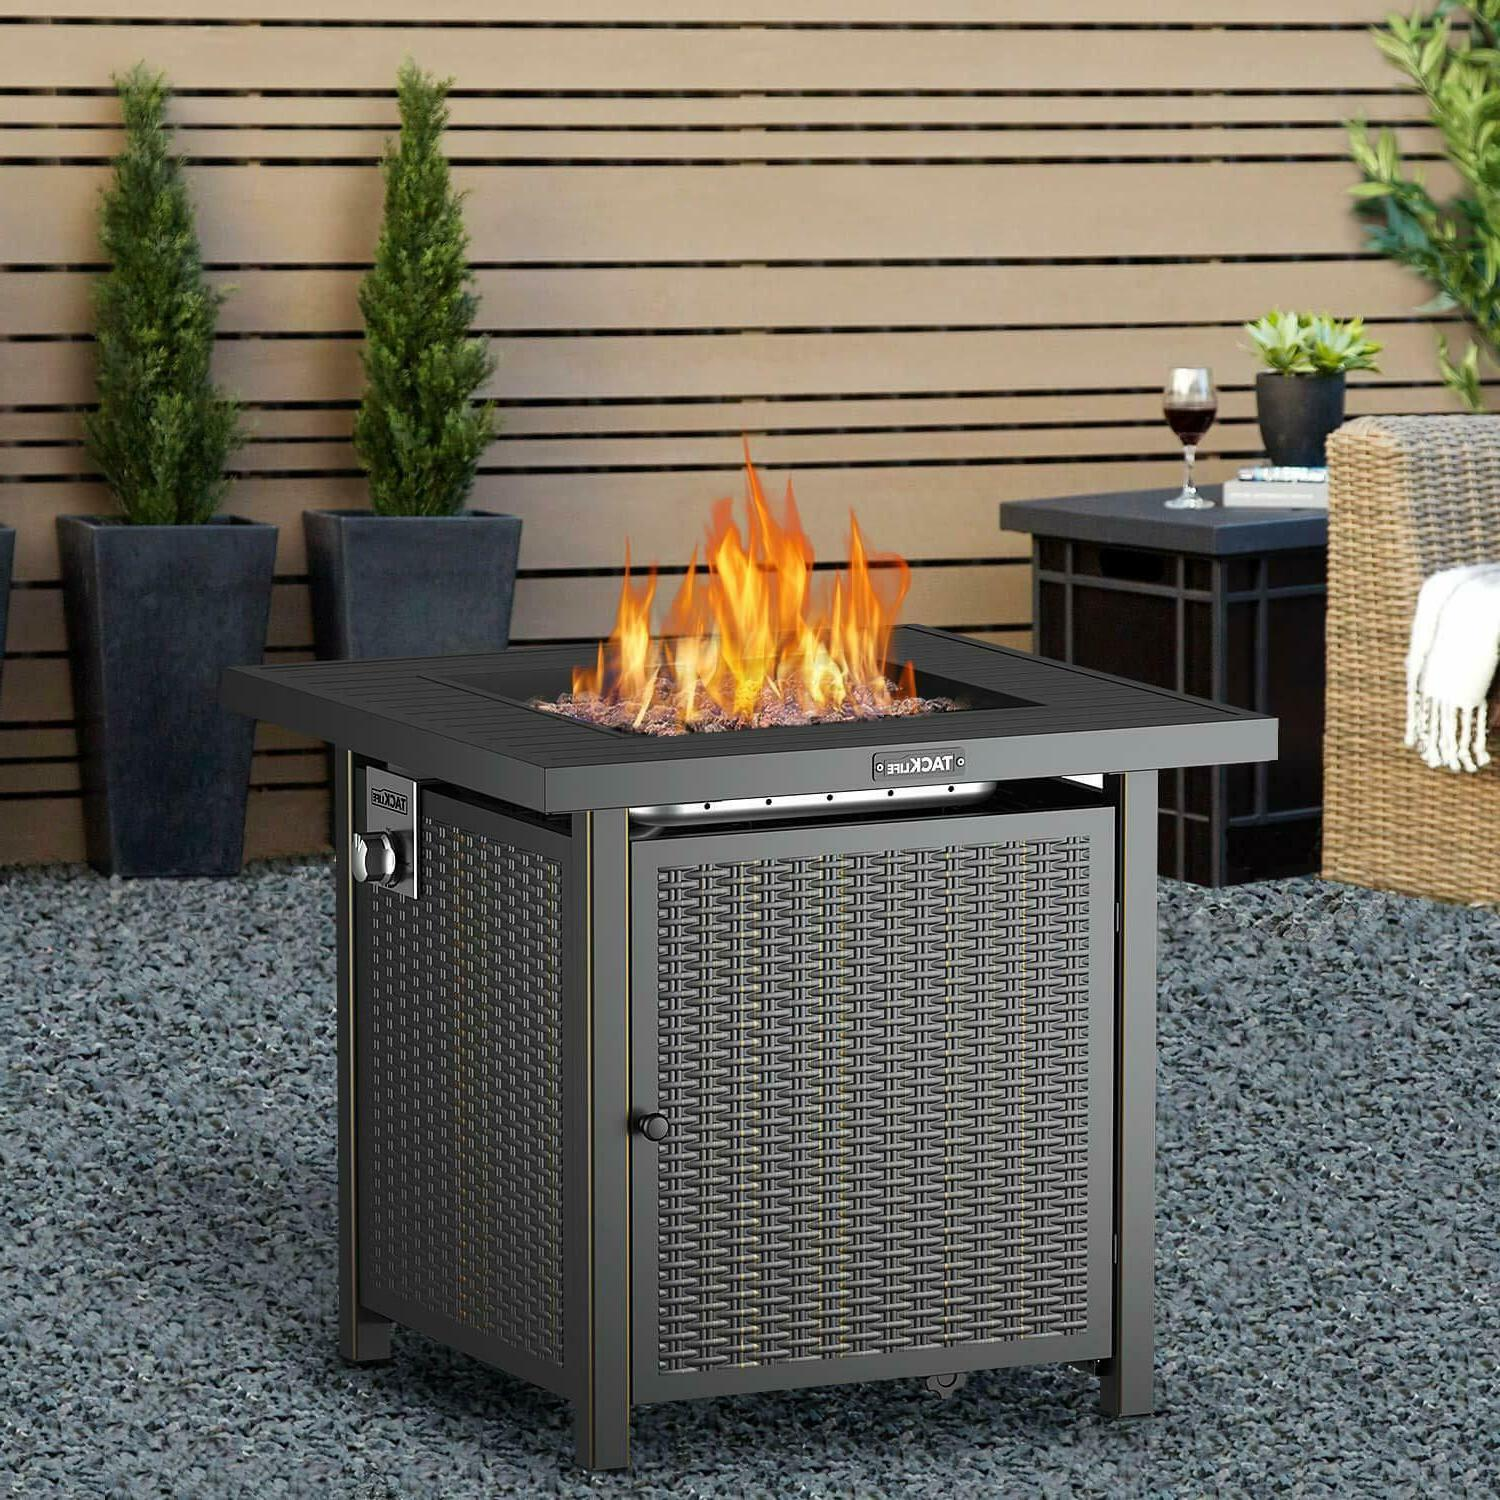 BBQ Propane Pit Table Outdoor Yard Cooking Party Camping Stove